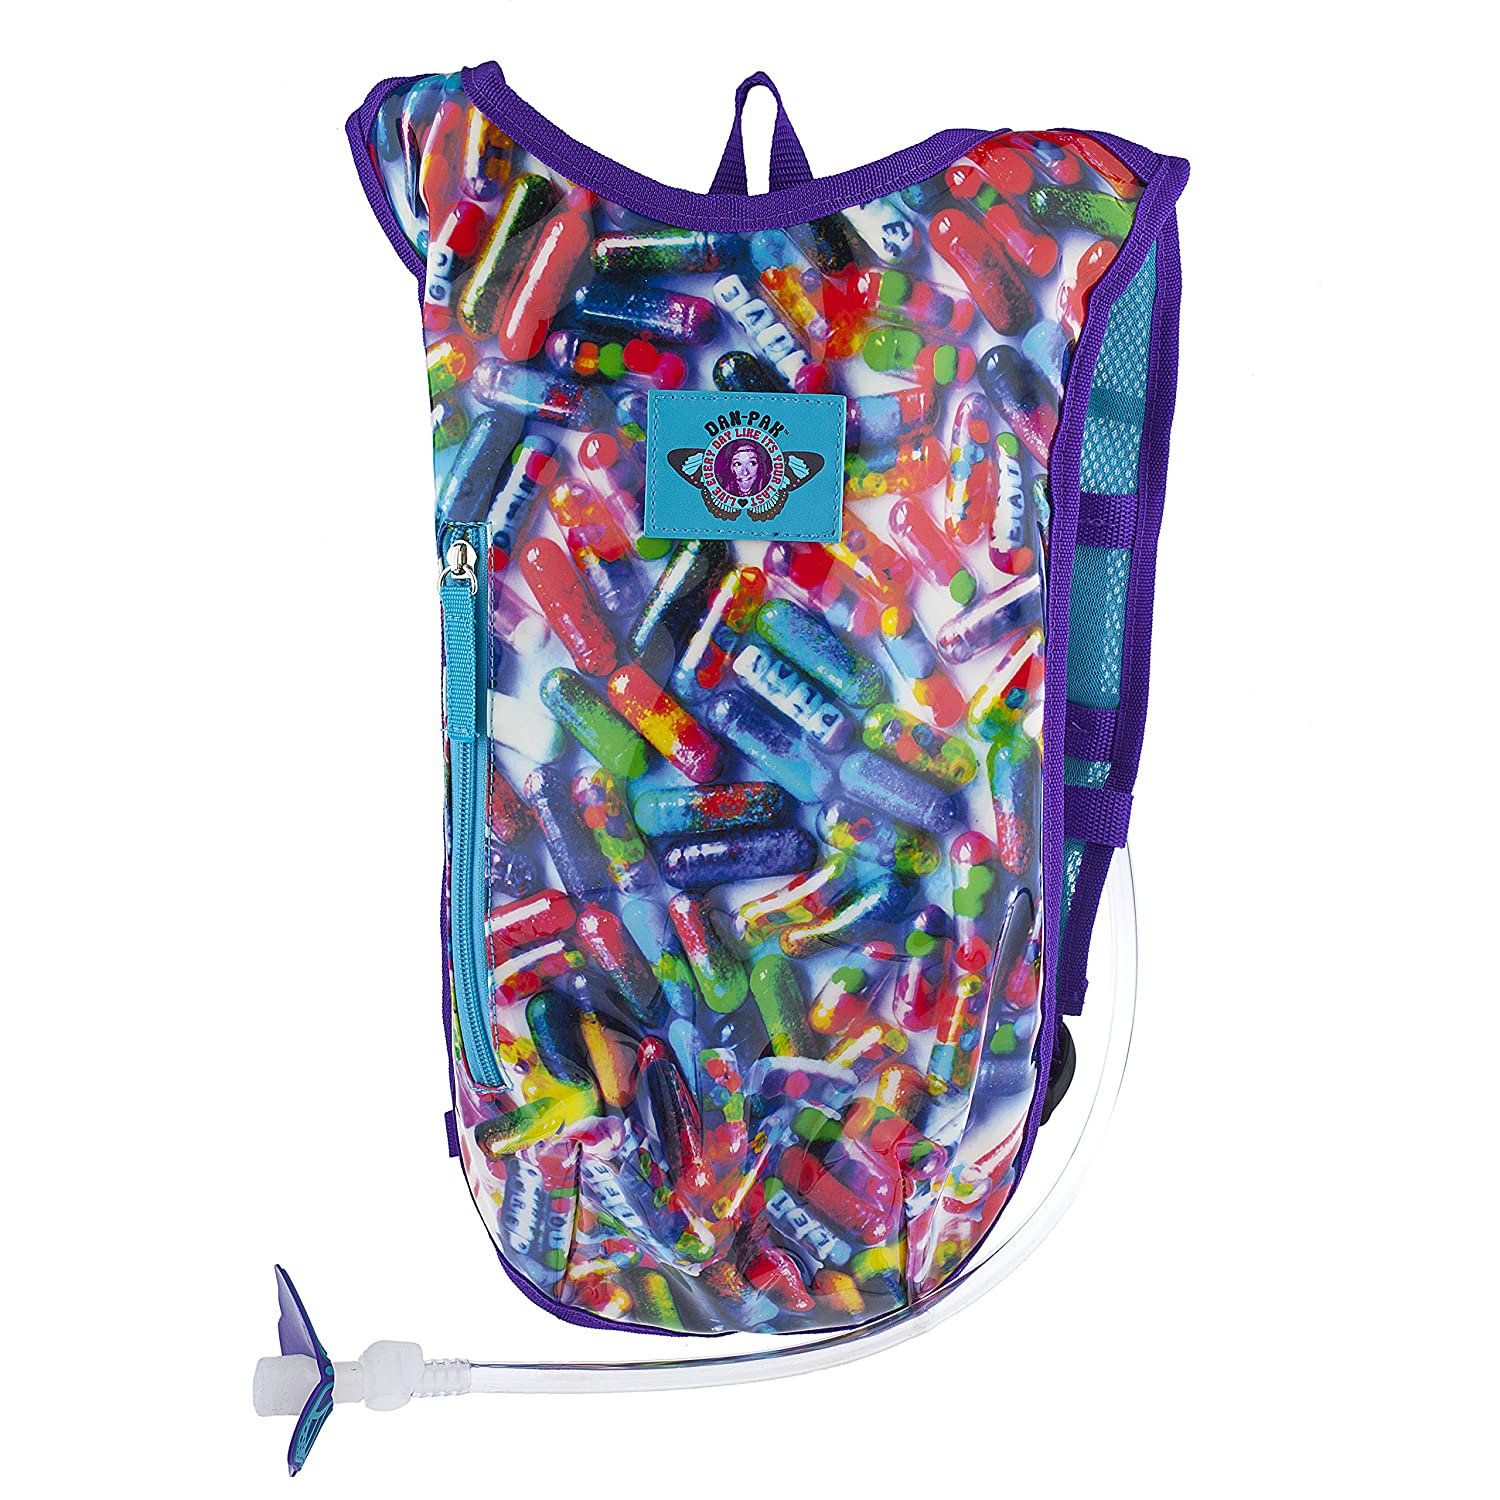 Dan-Pak Rave Hydration Pack 2l Glitter Pills Carnival Inc.